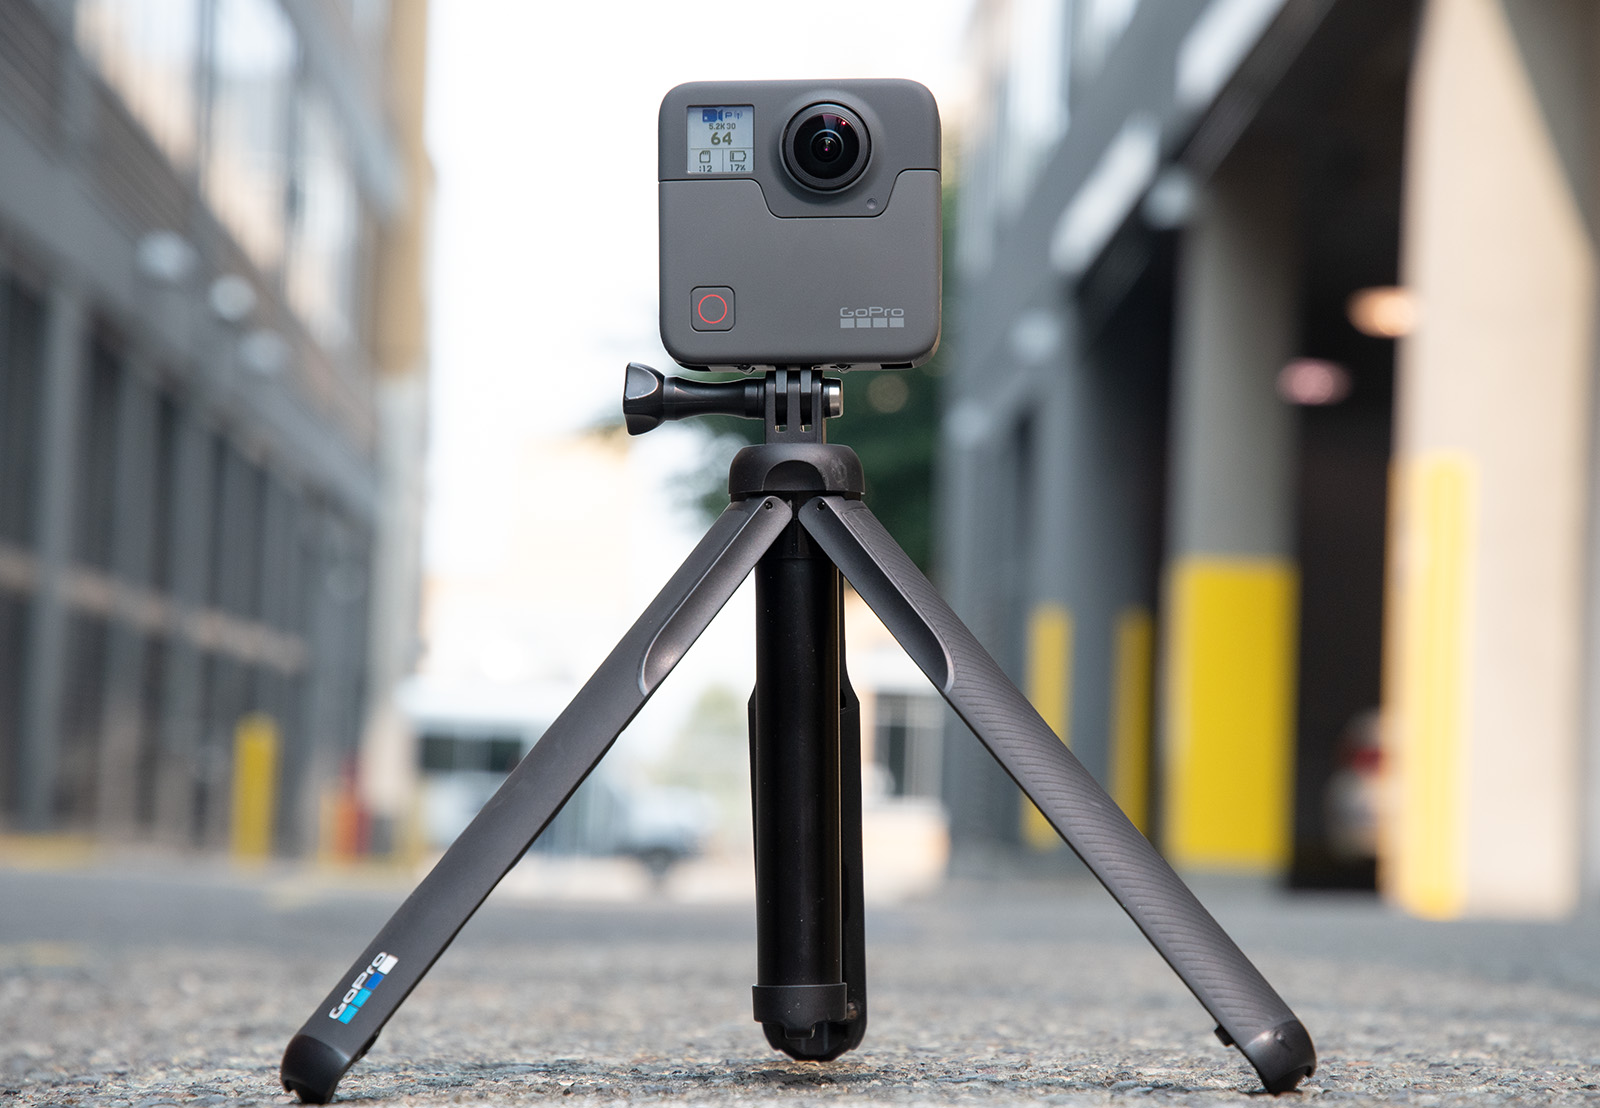 Review: the GoPro Fusion is a different kind of action camera